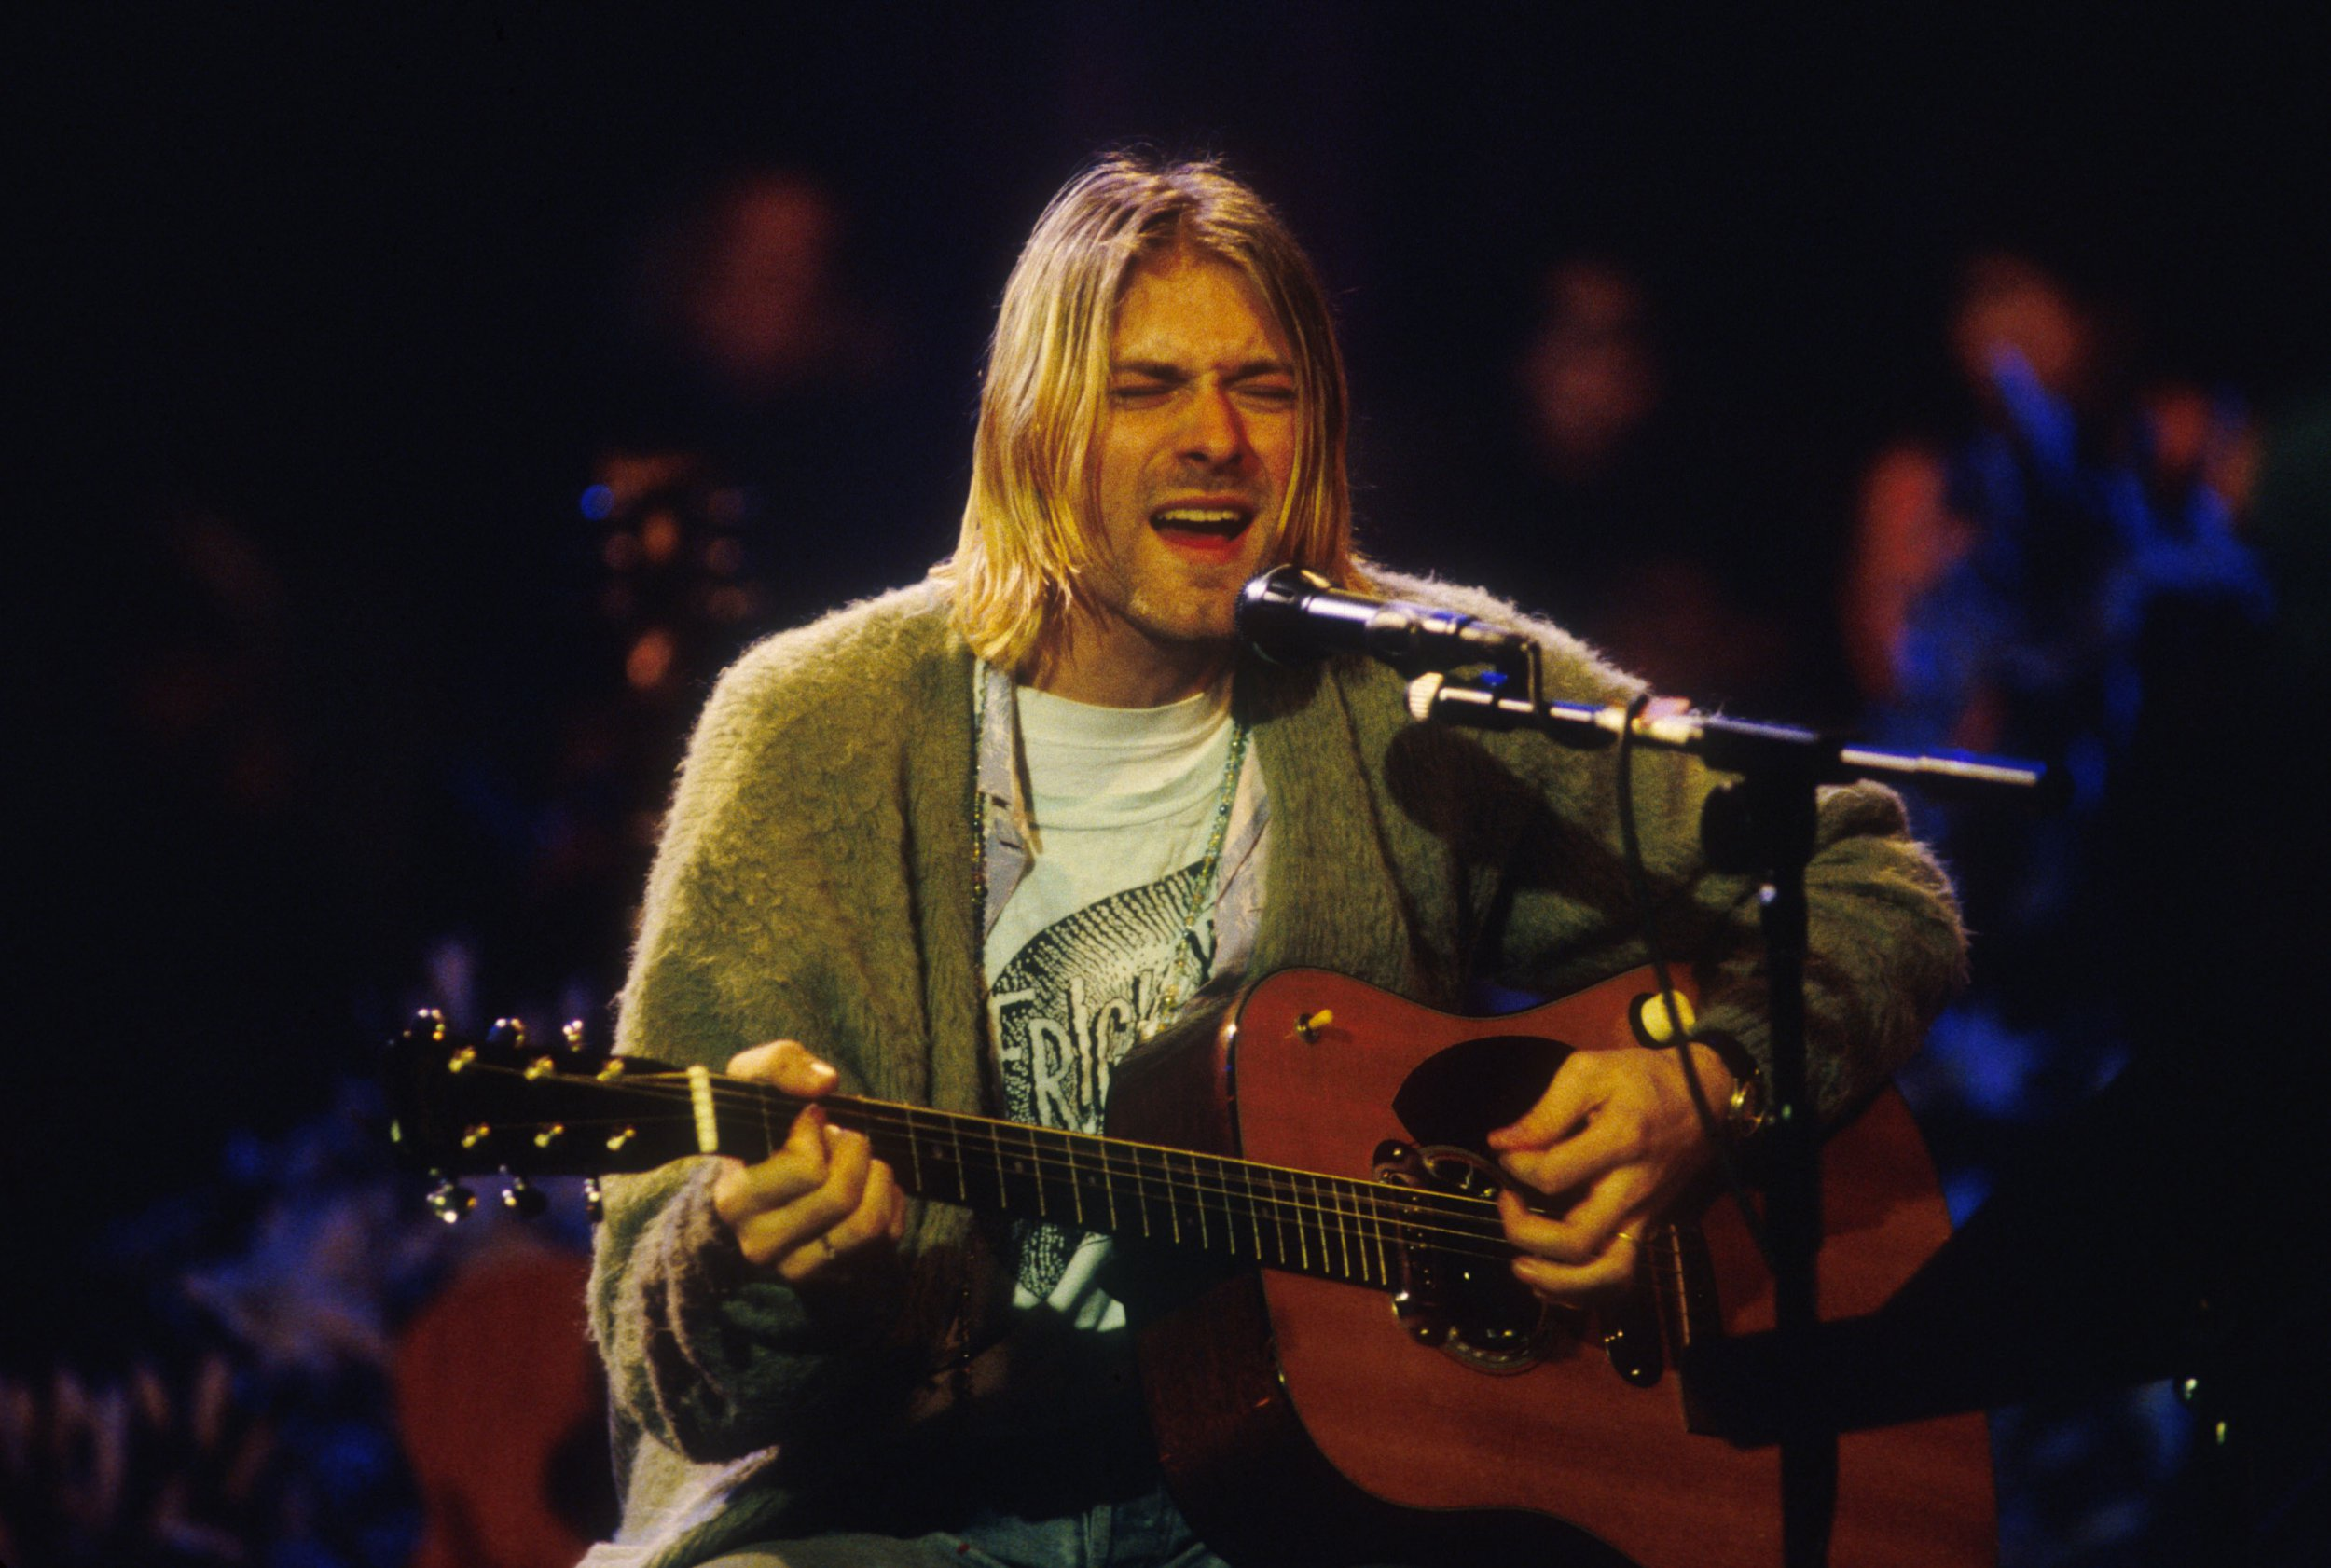 Kurt Cobain was a 'lovely and warm genius' says Oasis' record exec on Nirvana star's 25th death anniversary